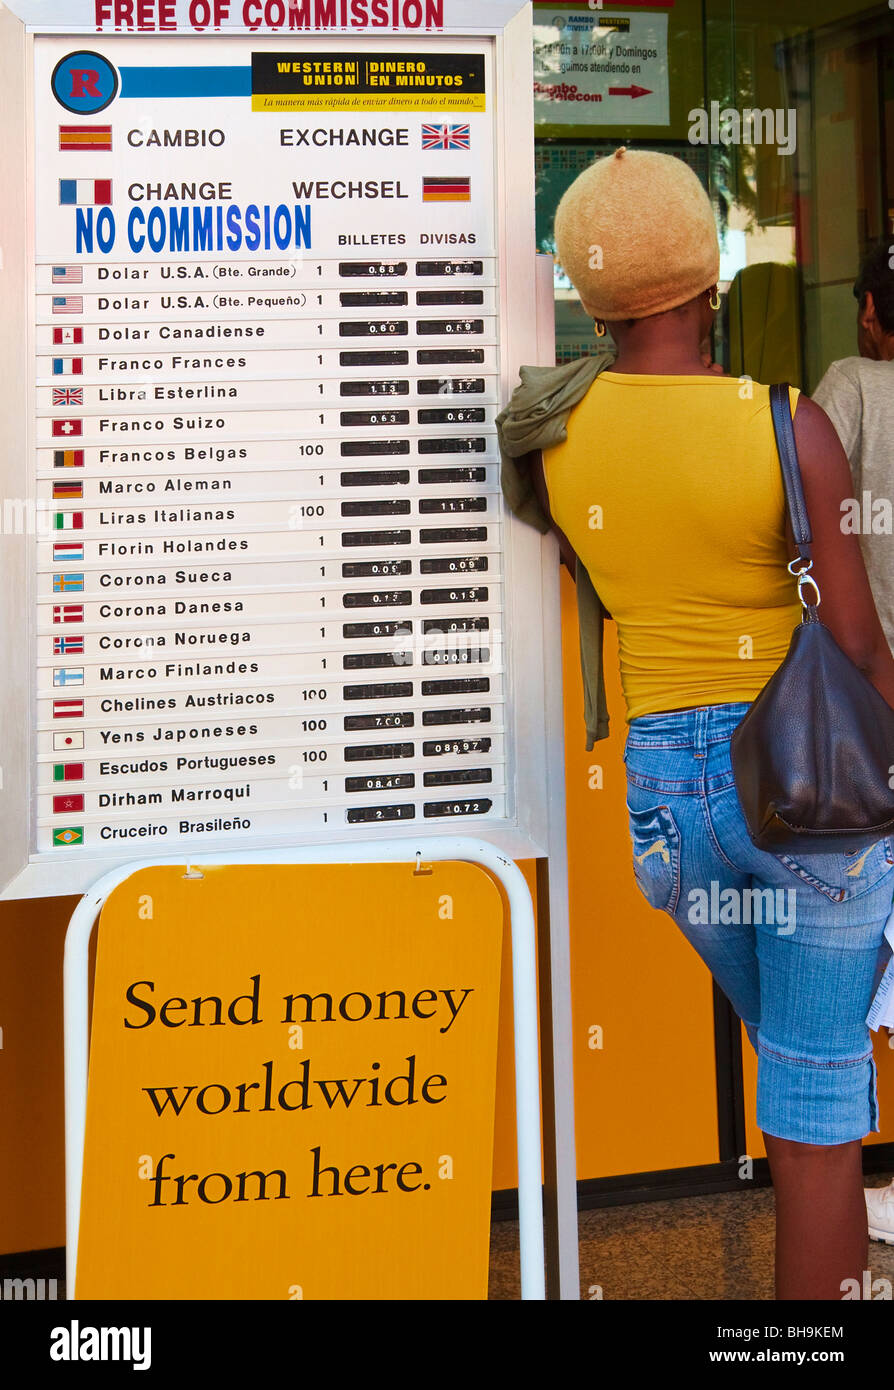 Woman leaning against international currency exchange rate board outside Western Union office in Fuengirola, Spain Stock Photo